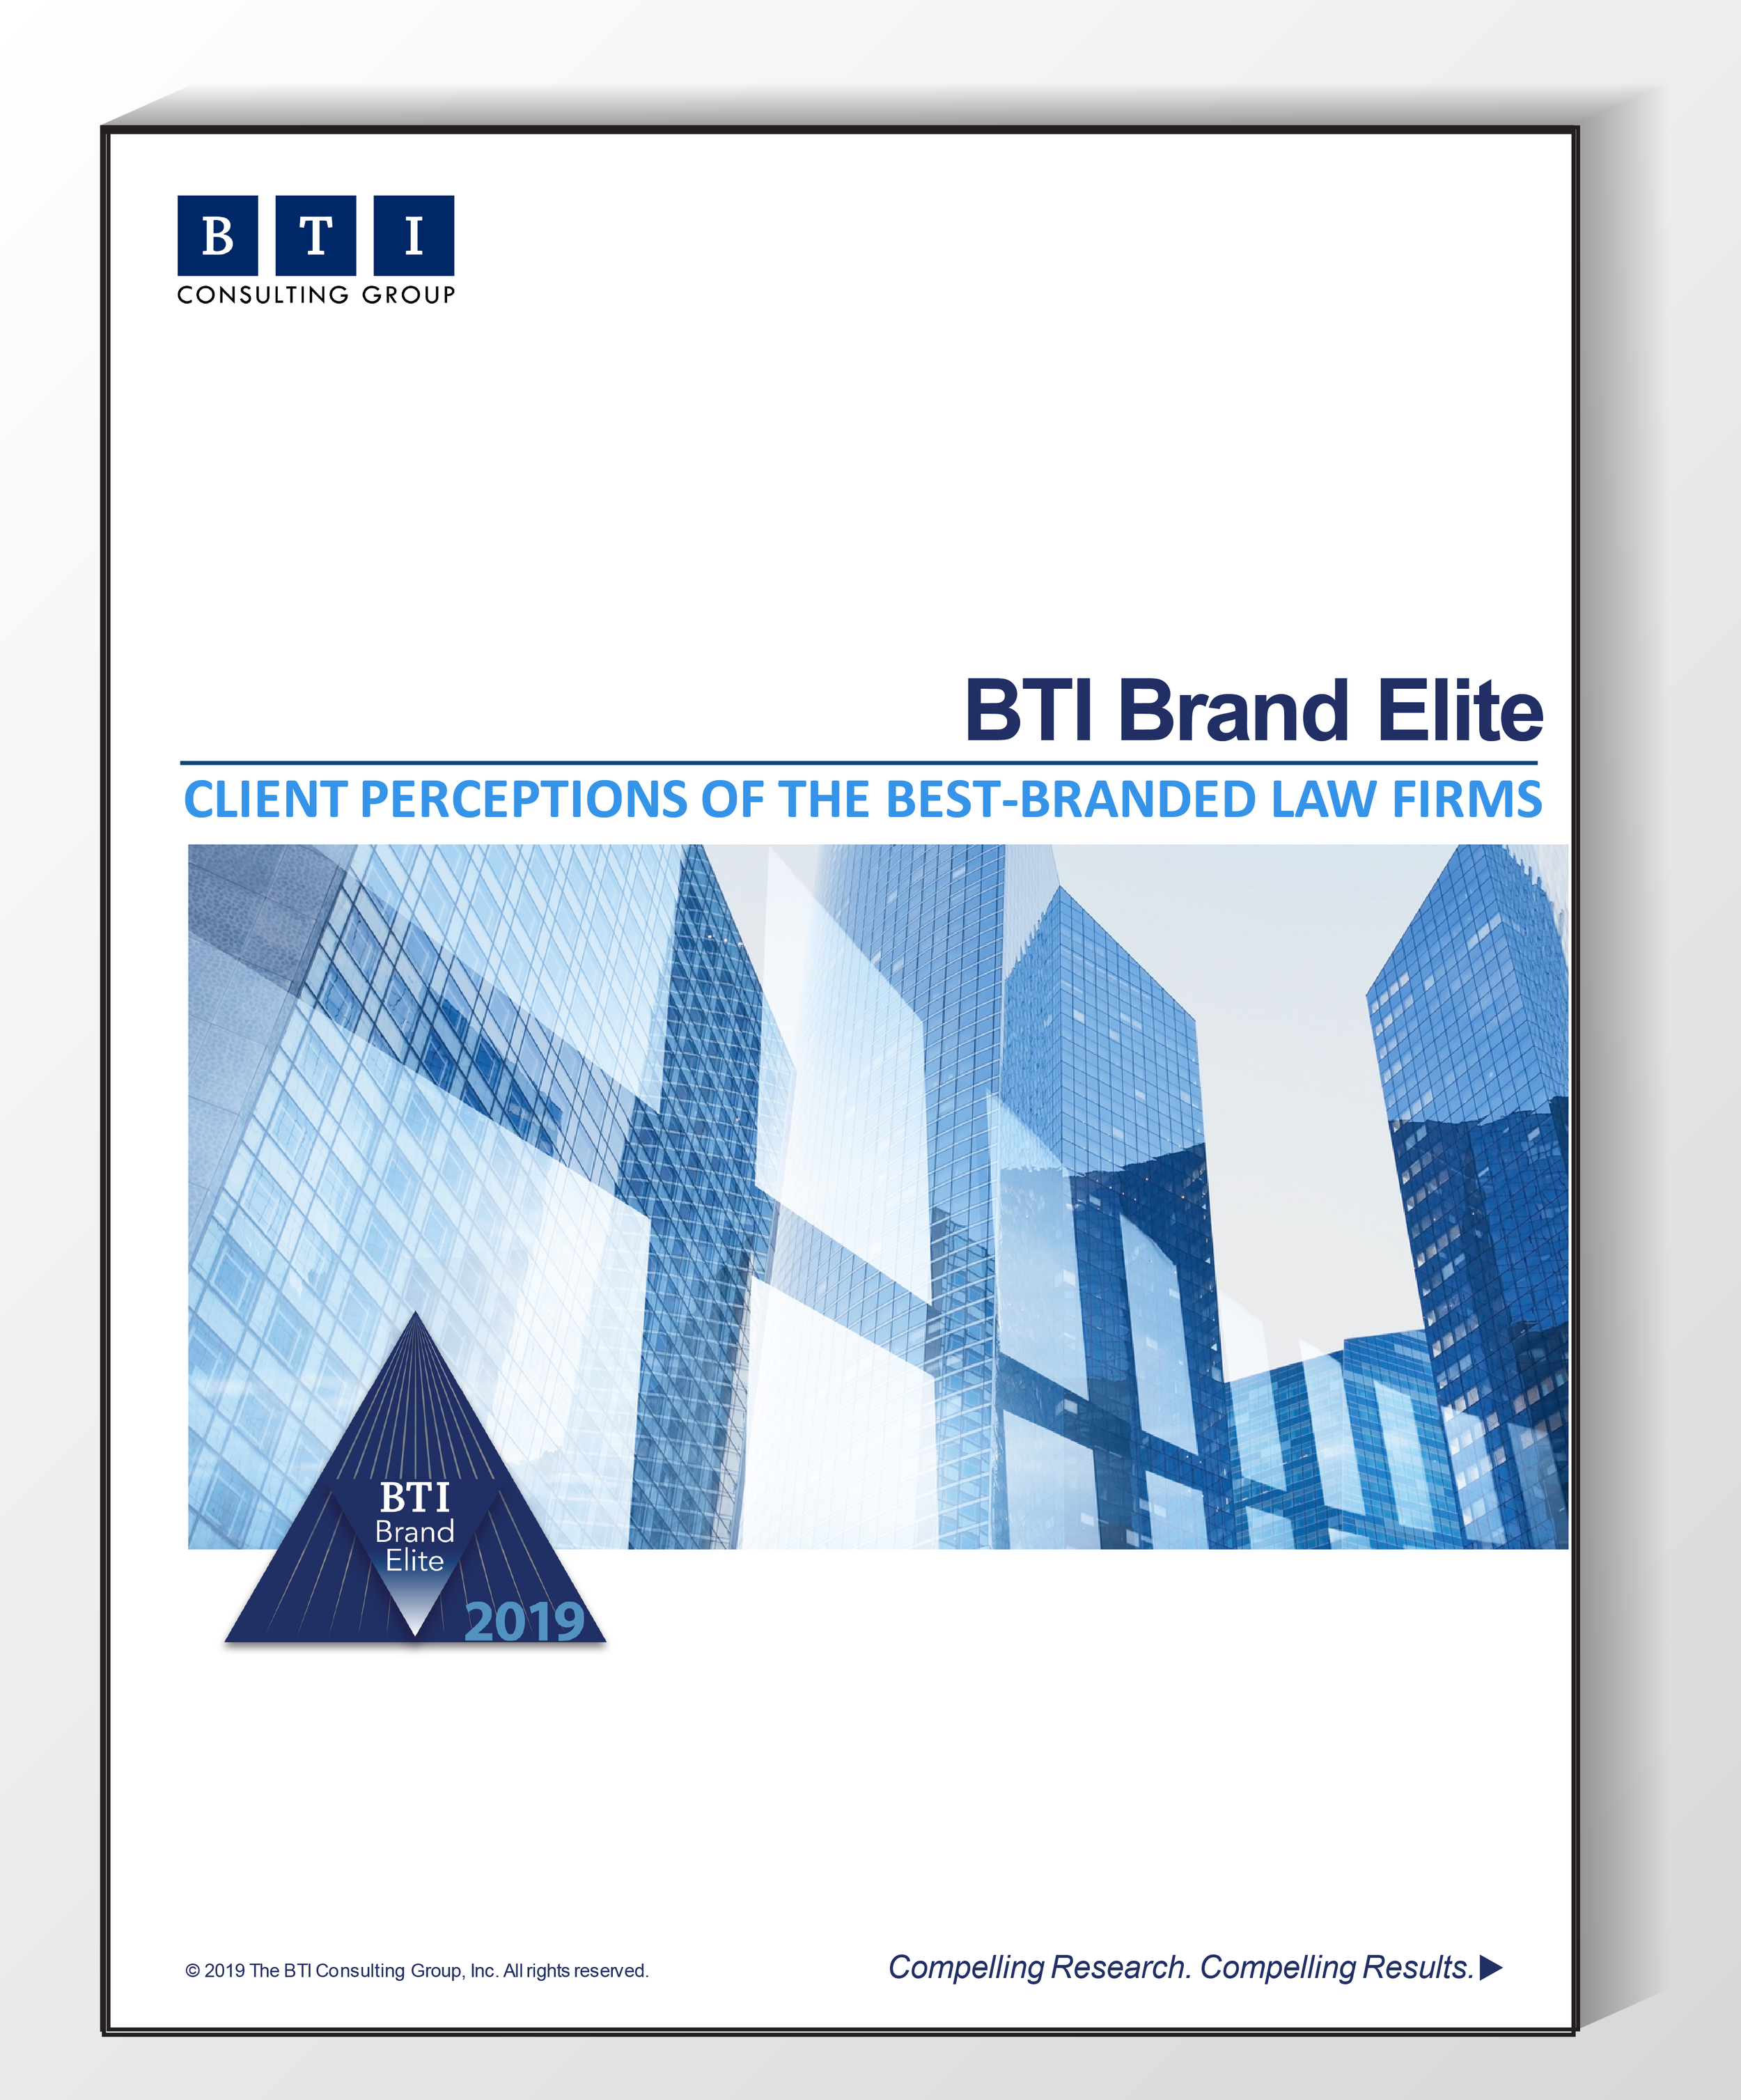 ed3a35486c942 BTI Brand Elite 2019  Client Perceptions of the Best-Branded Law Firms